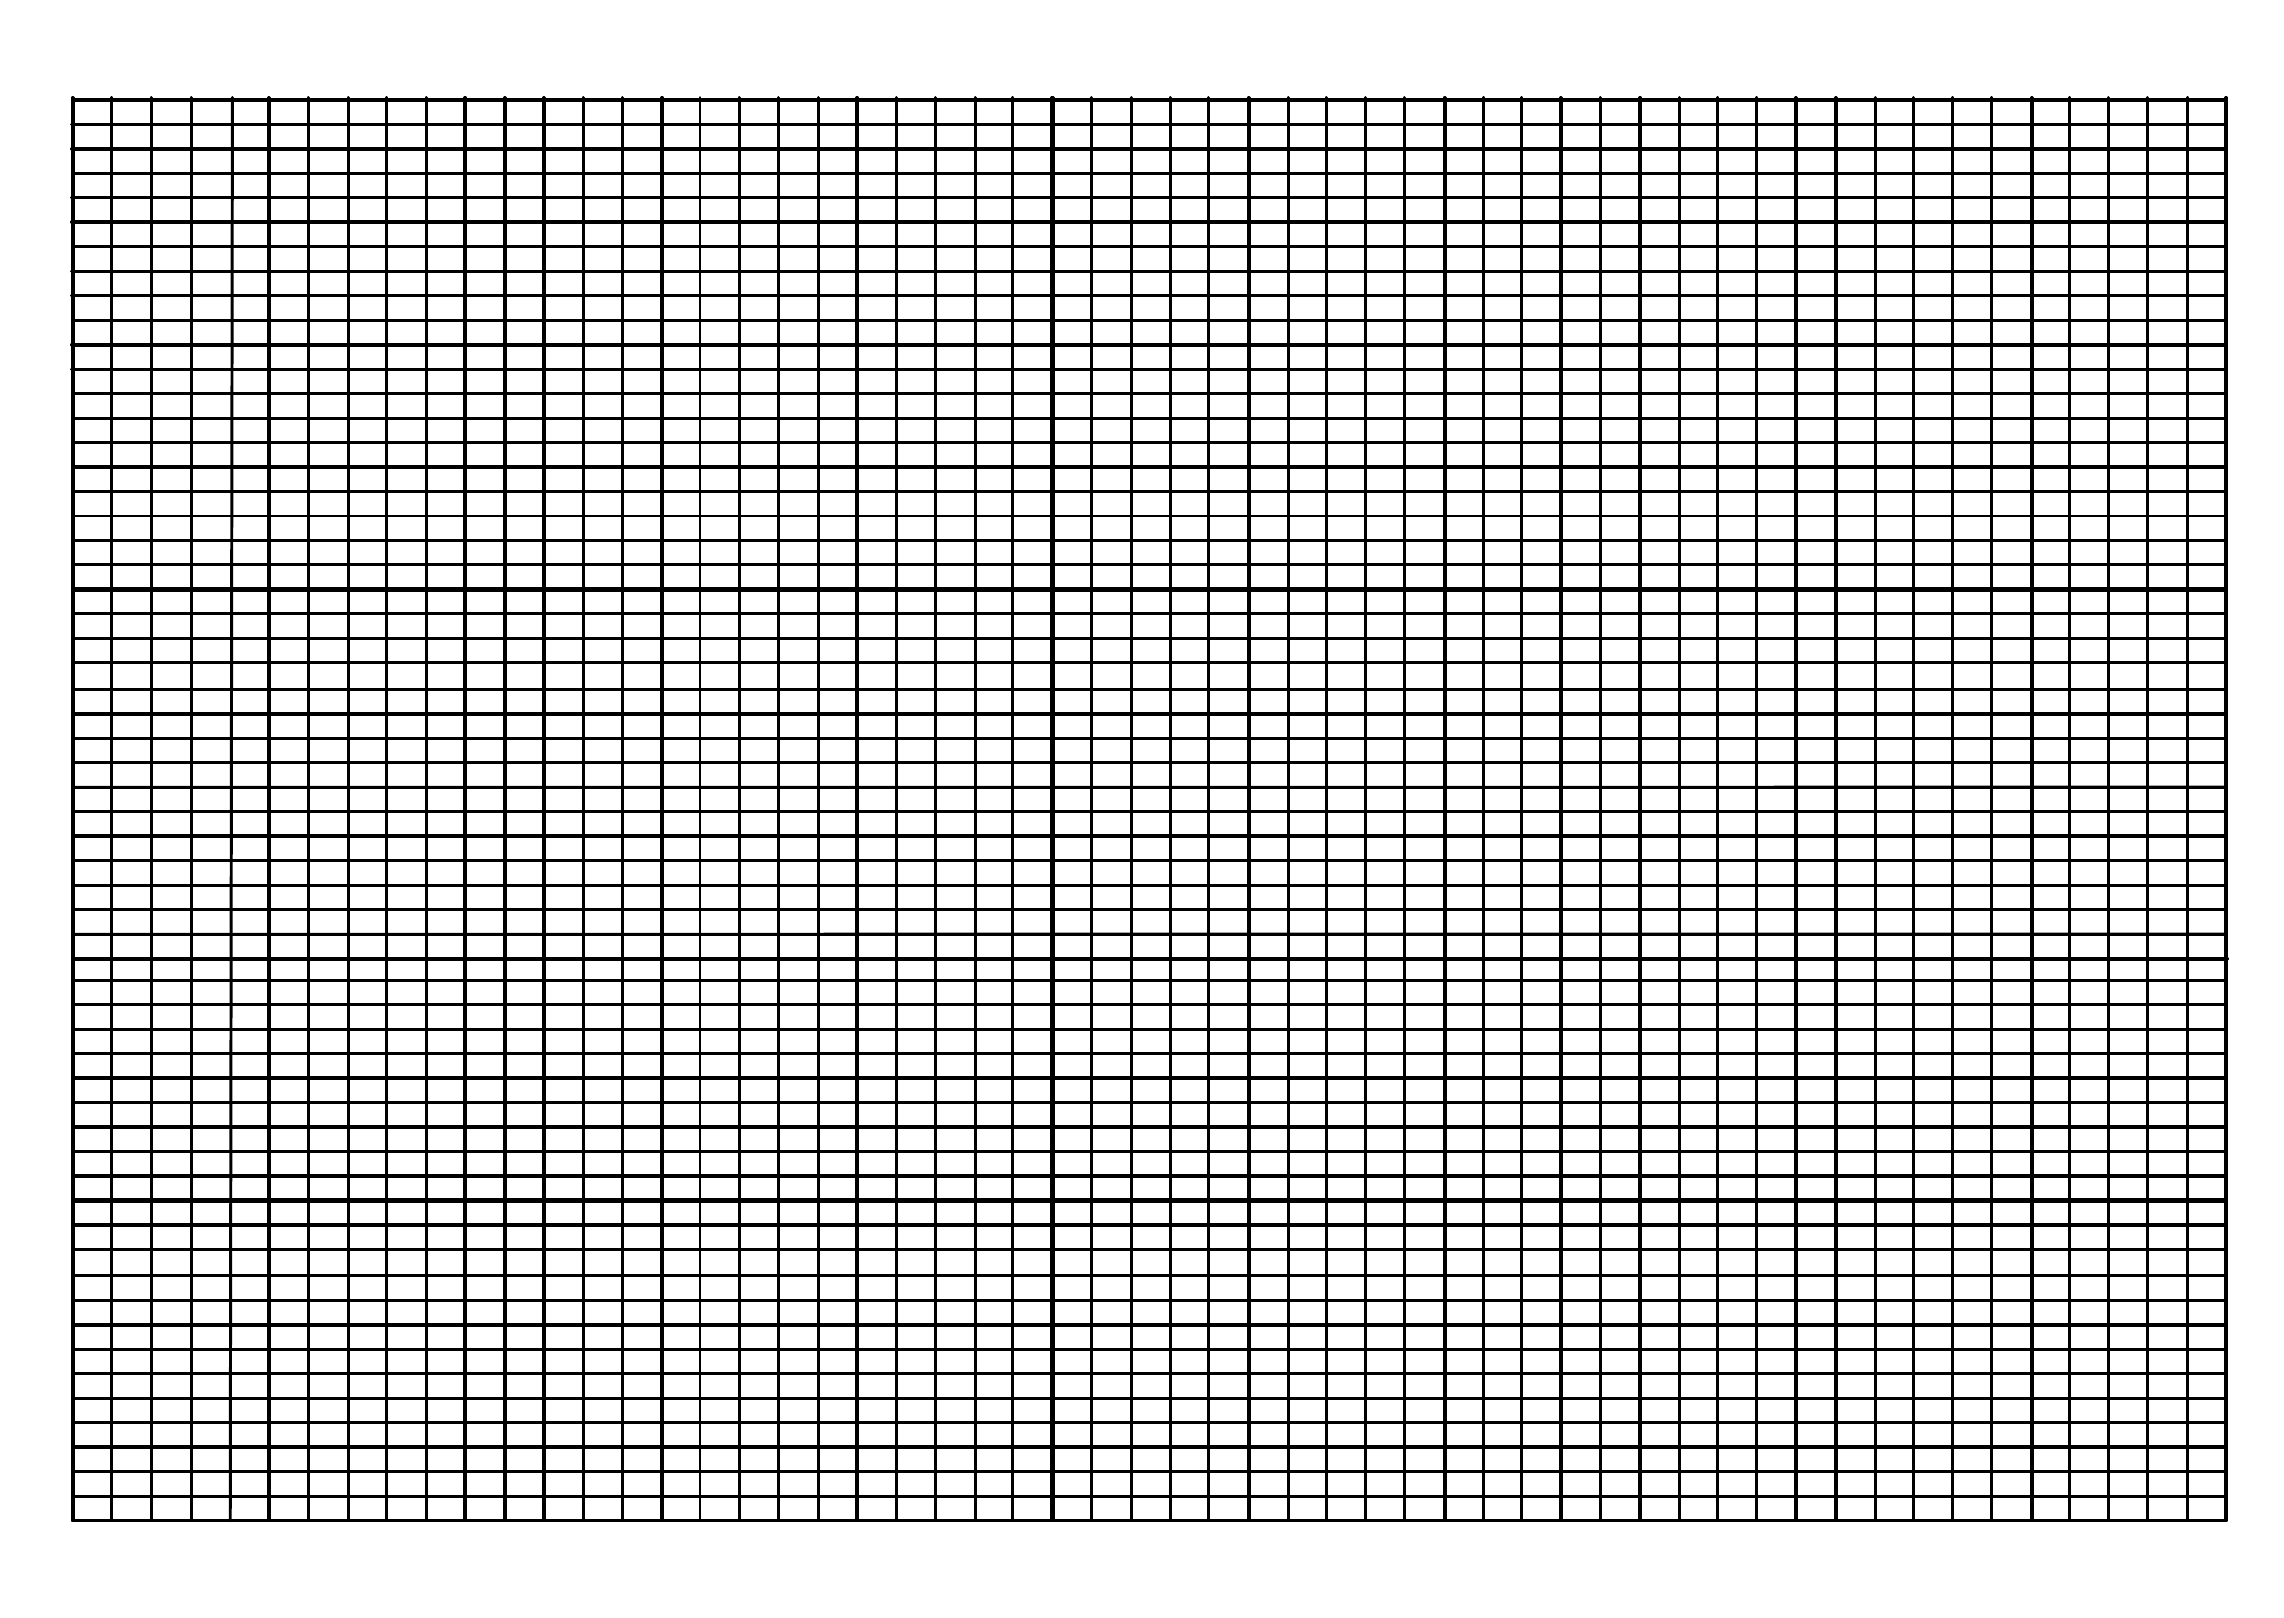 Graph Paper Template images on Favim com